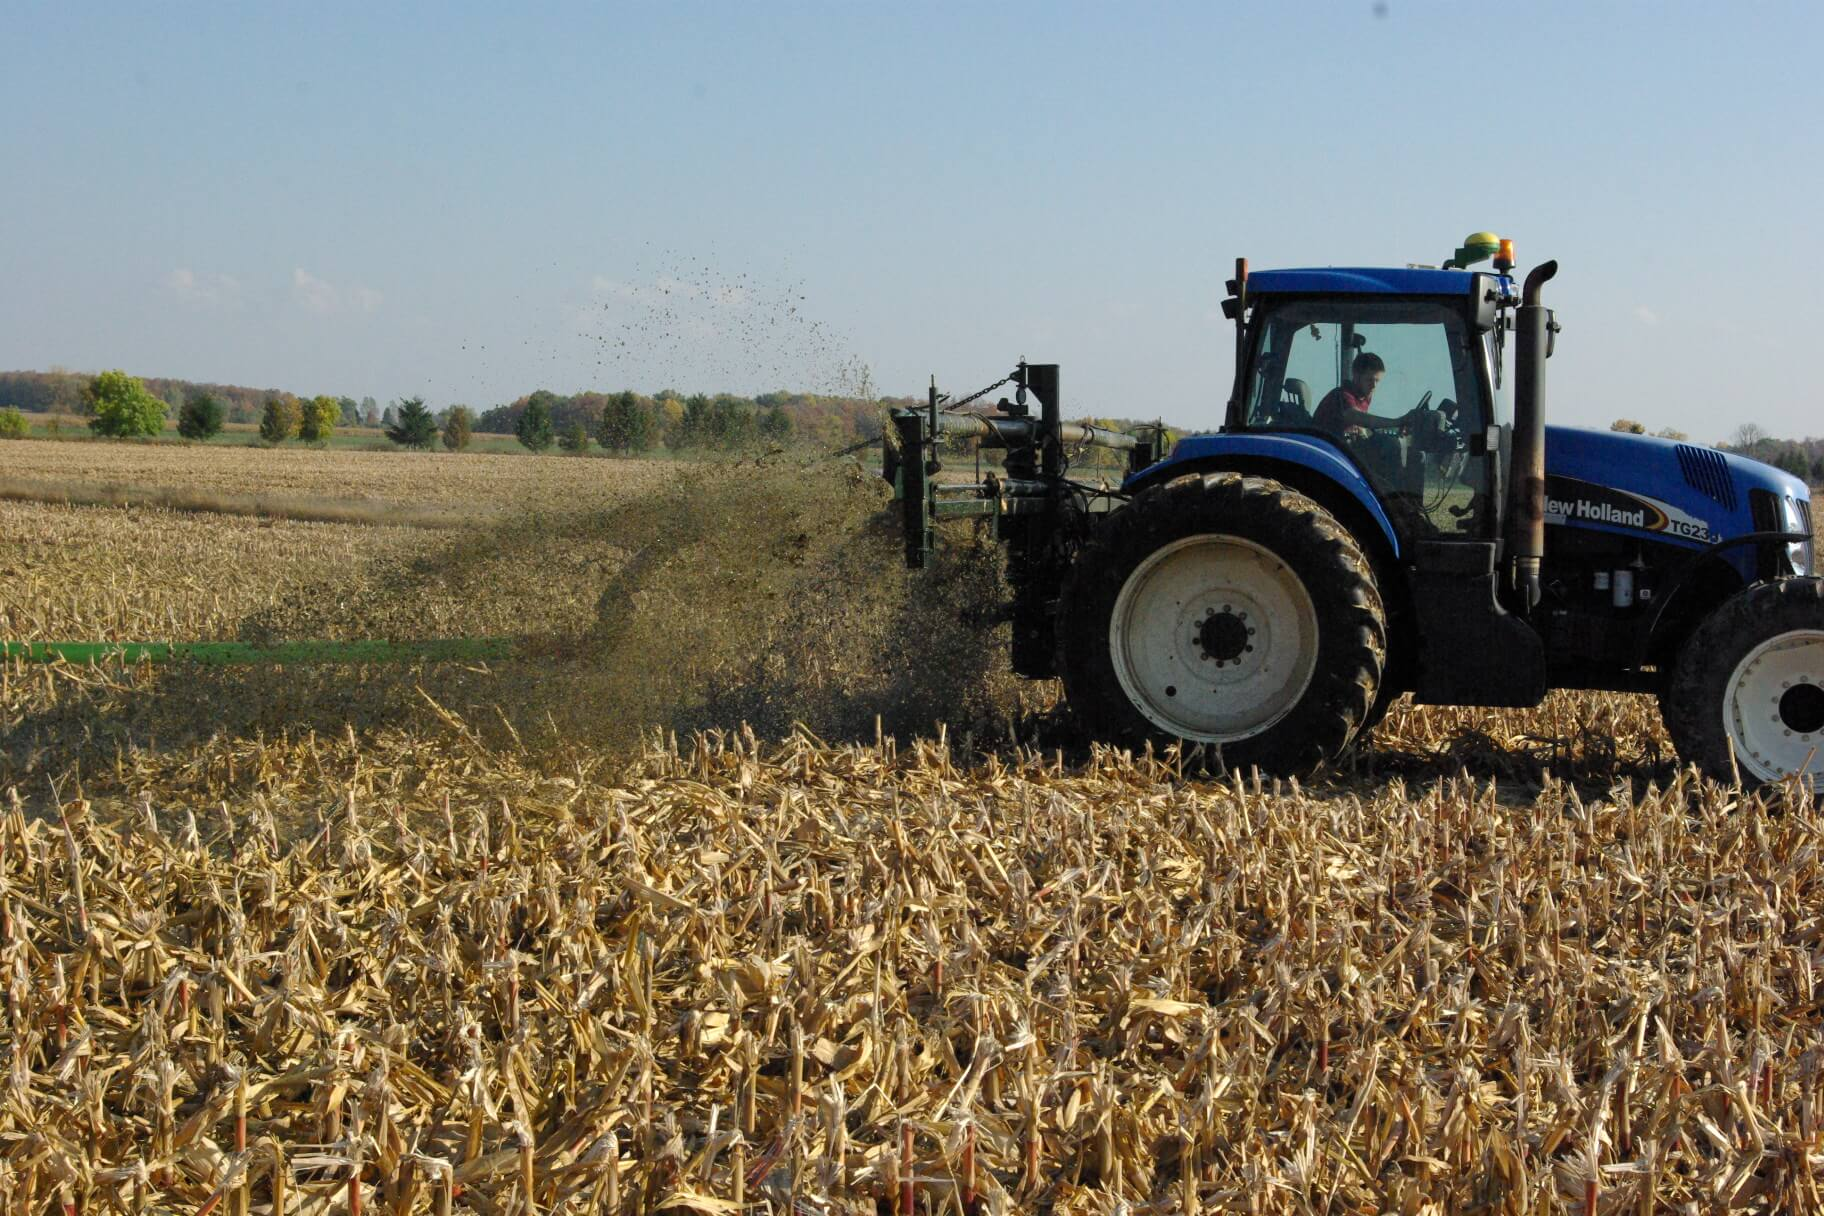 Winter Manure Application: Research Needs and Future Direction